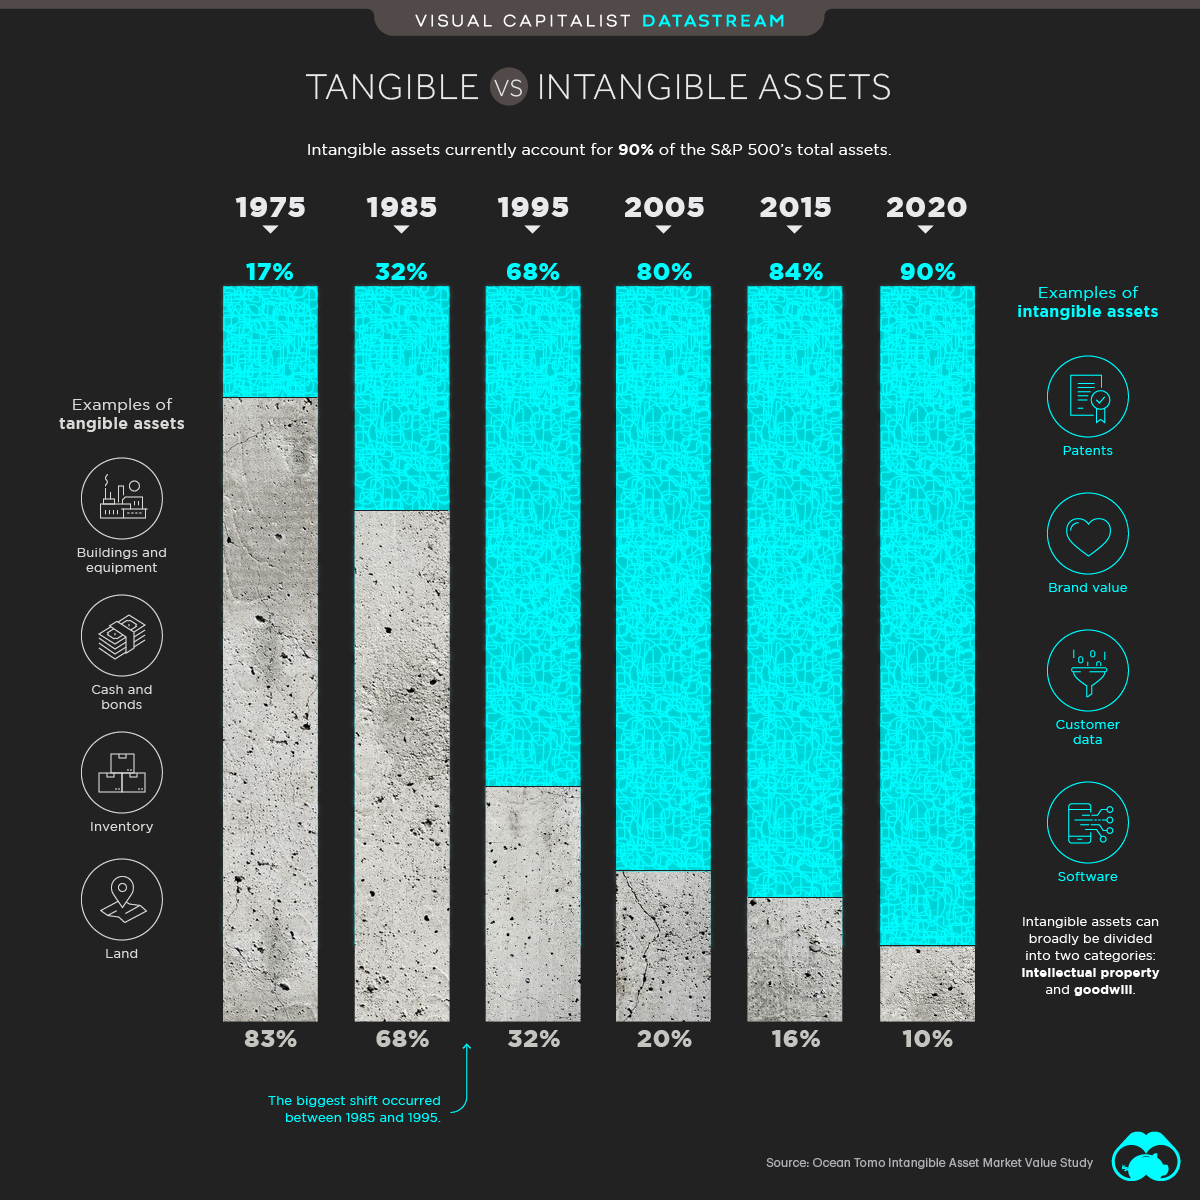 Tangible vs intangible assets in the S&P 500